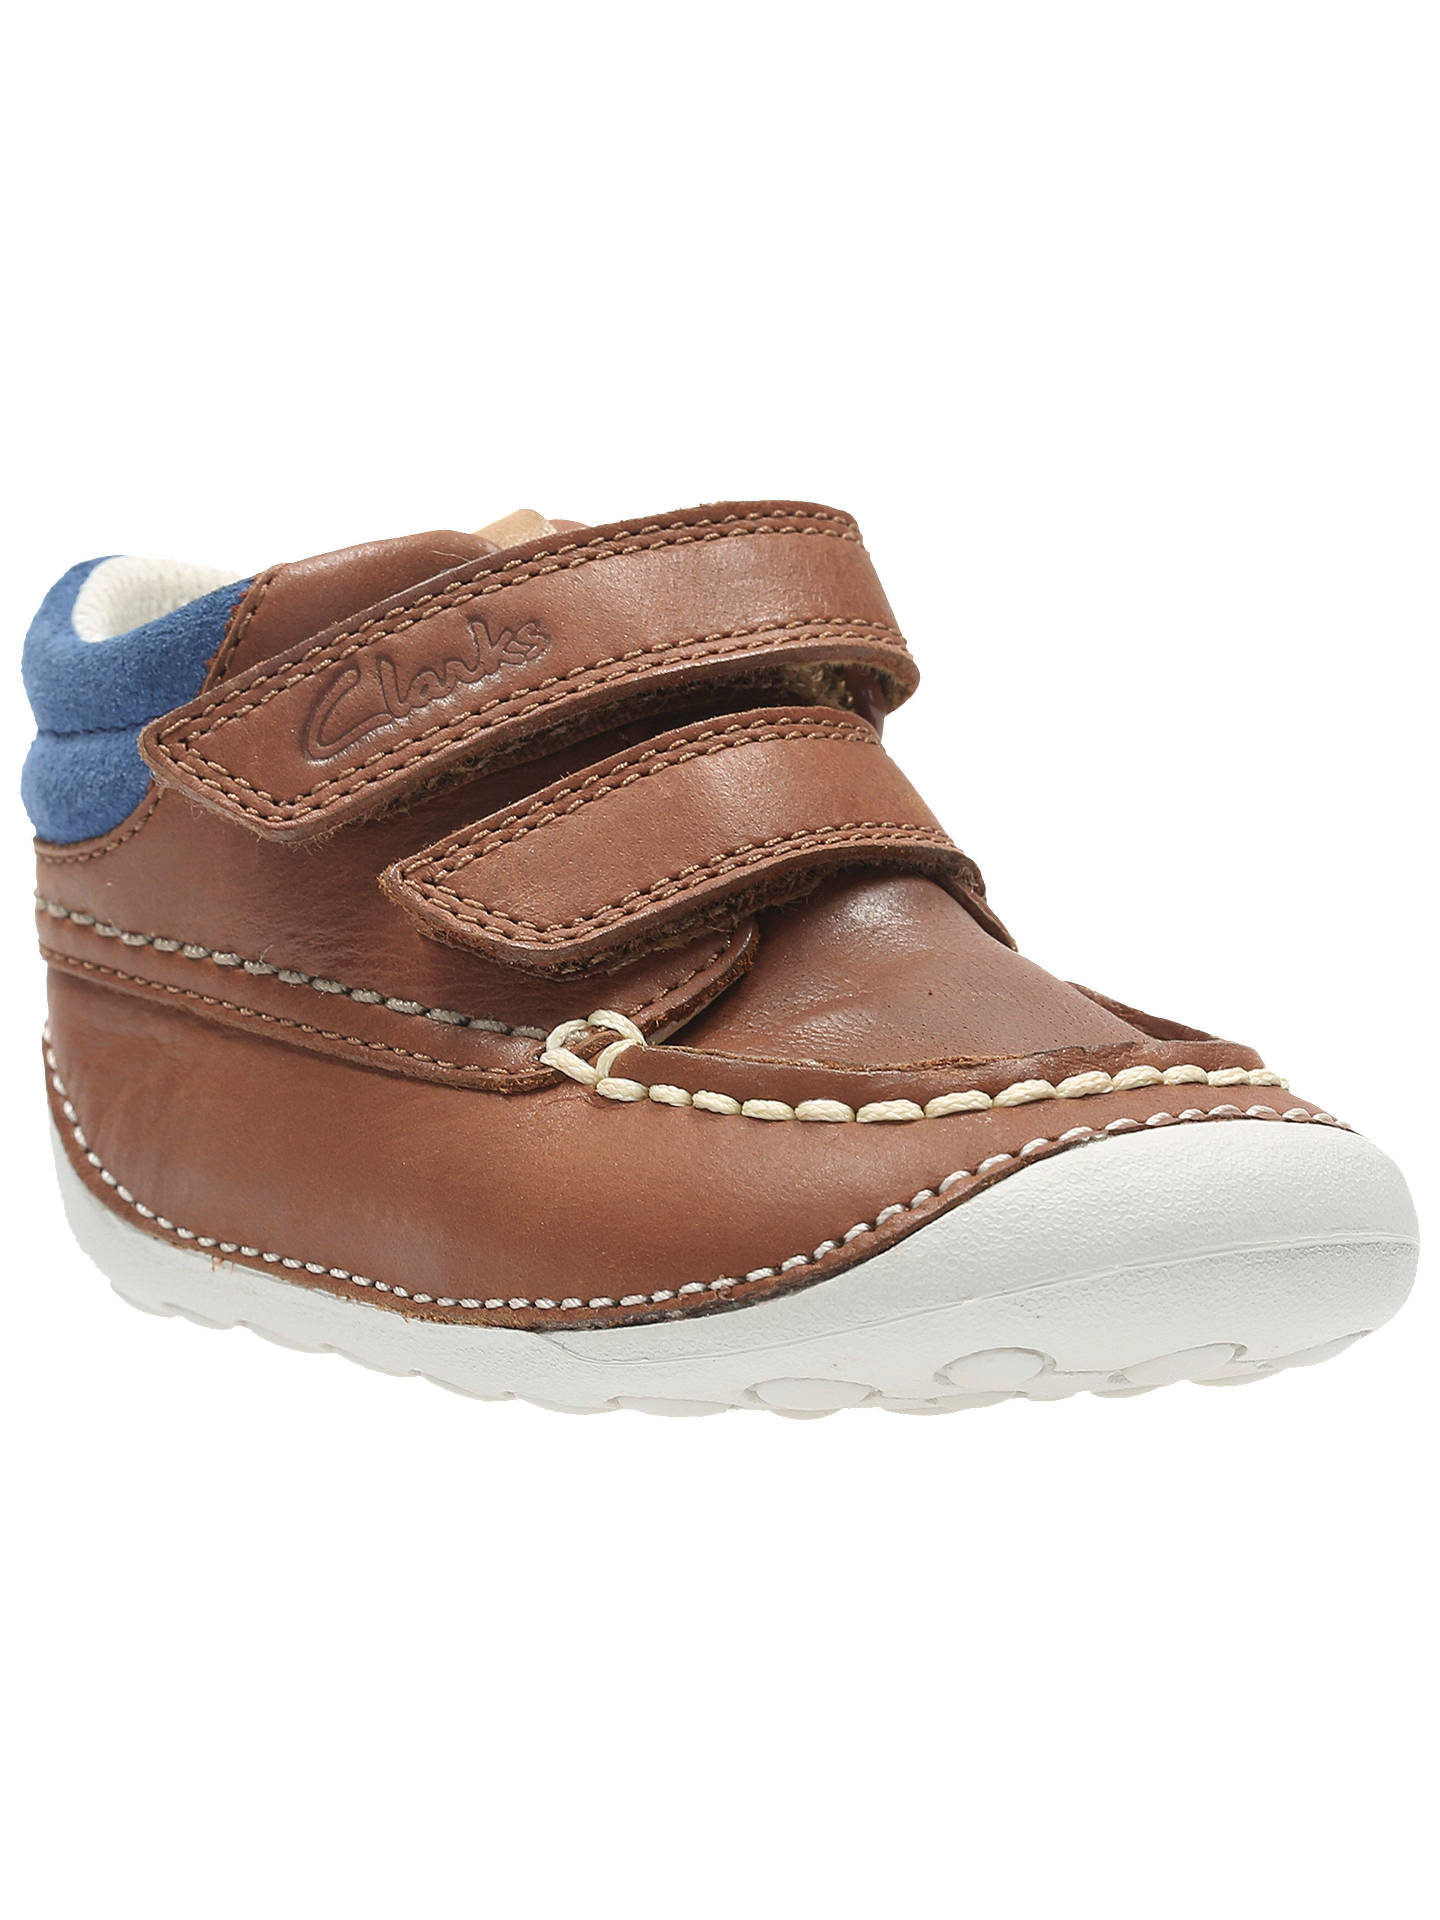 afac07cf434b Buy Clarks Children s Tiny Tuktu Leather Shoes